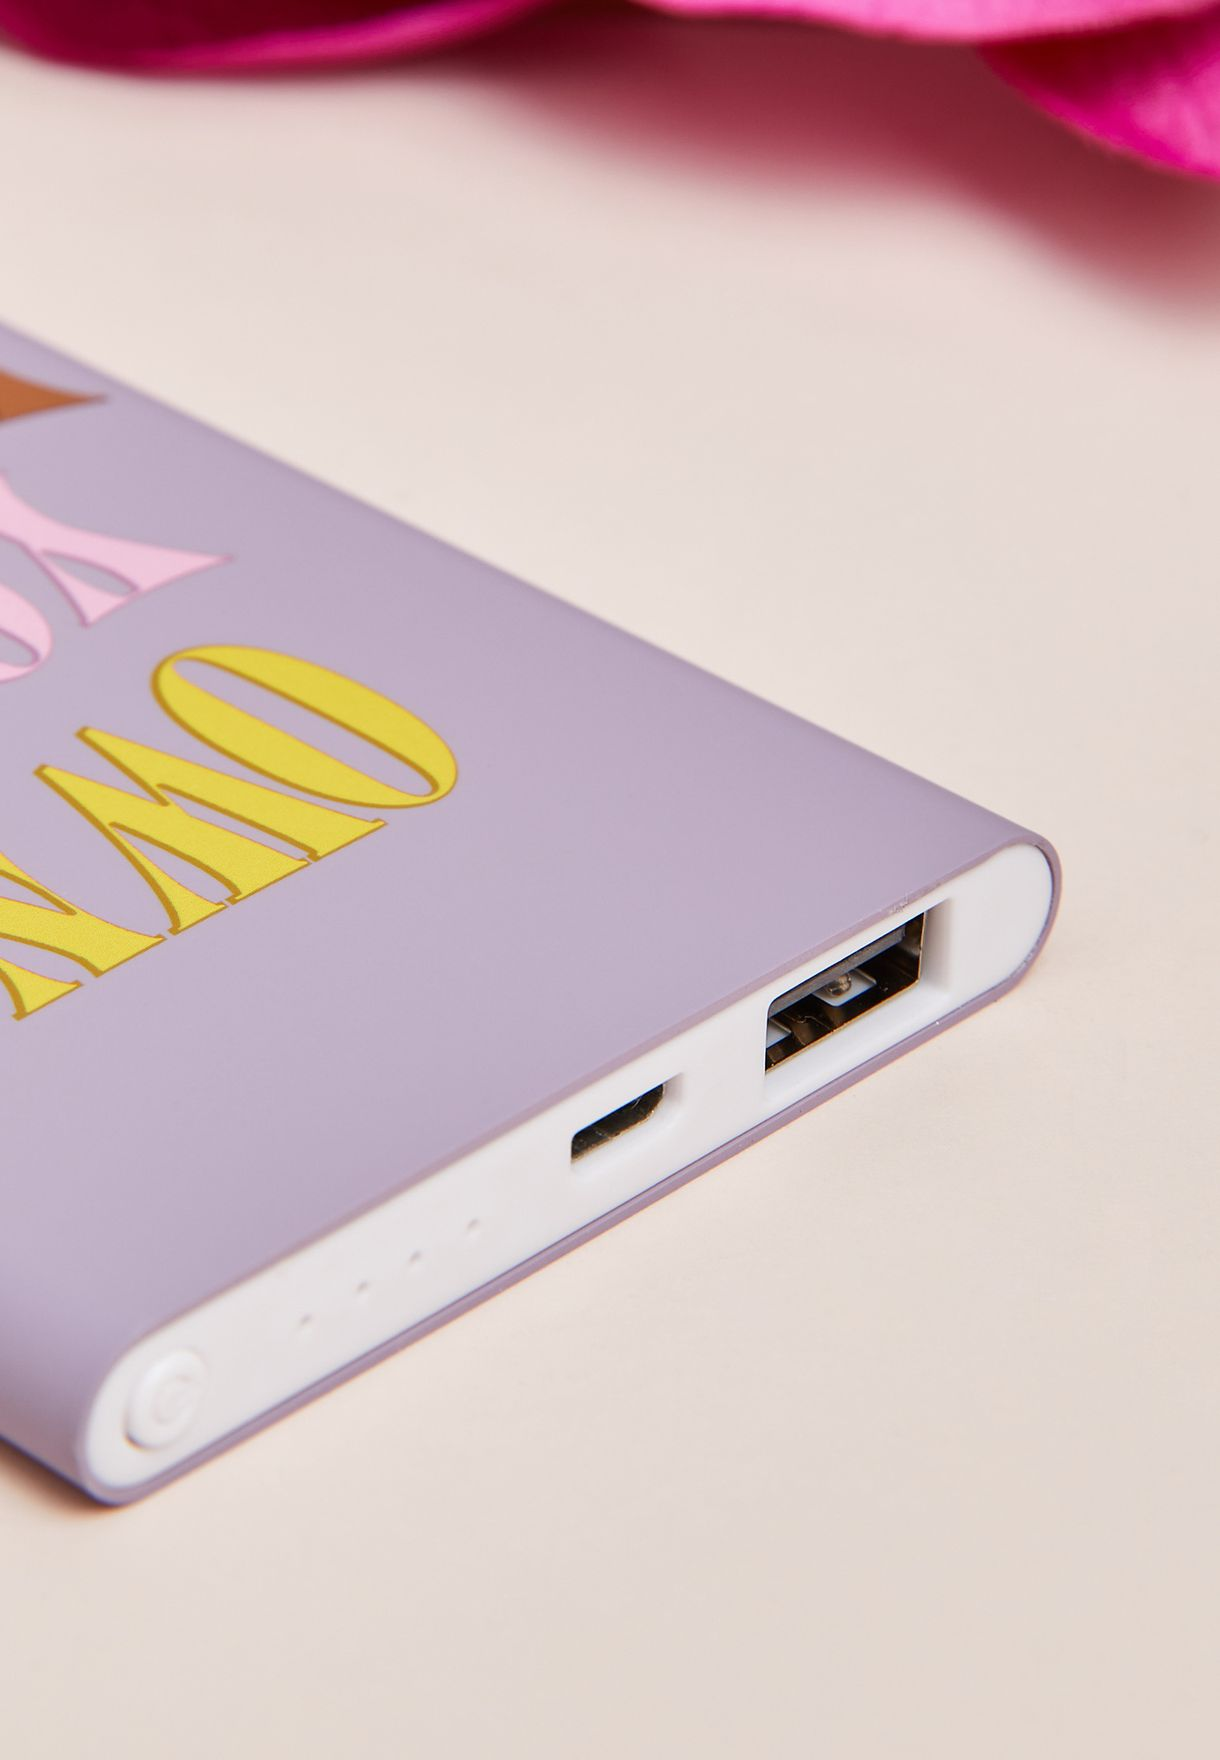 Own Your Power Printed Portable Power Bank